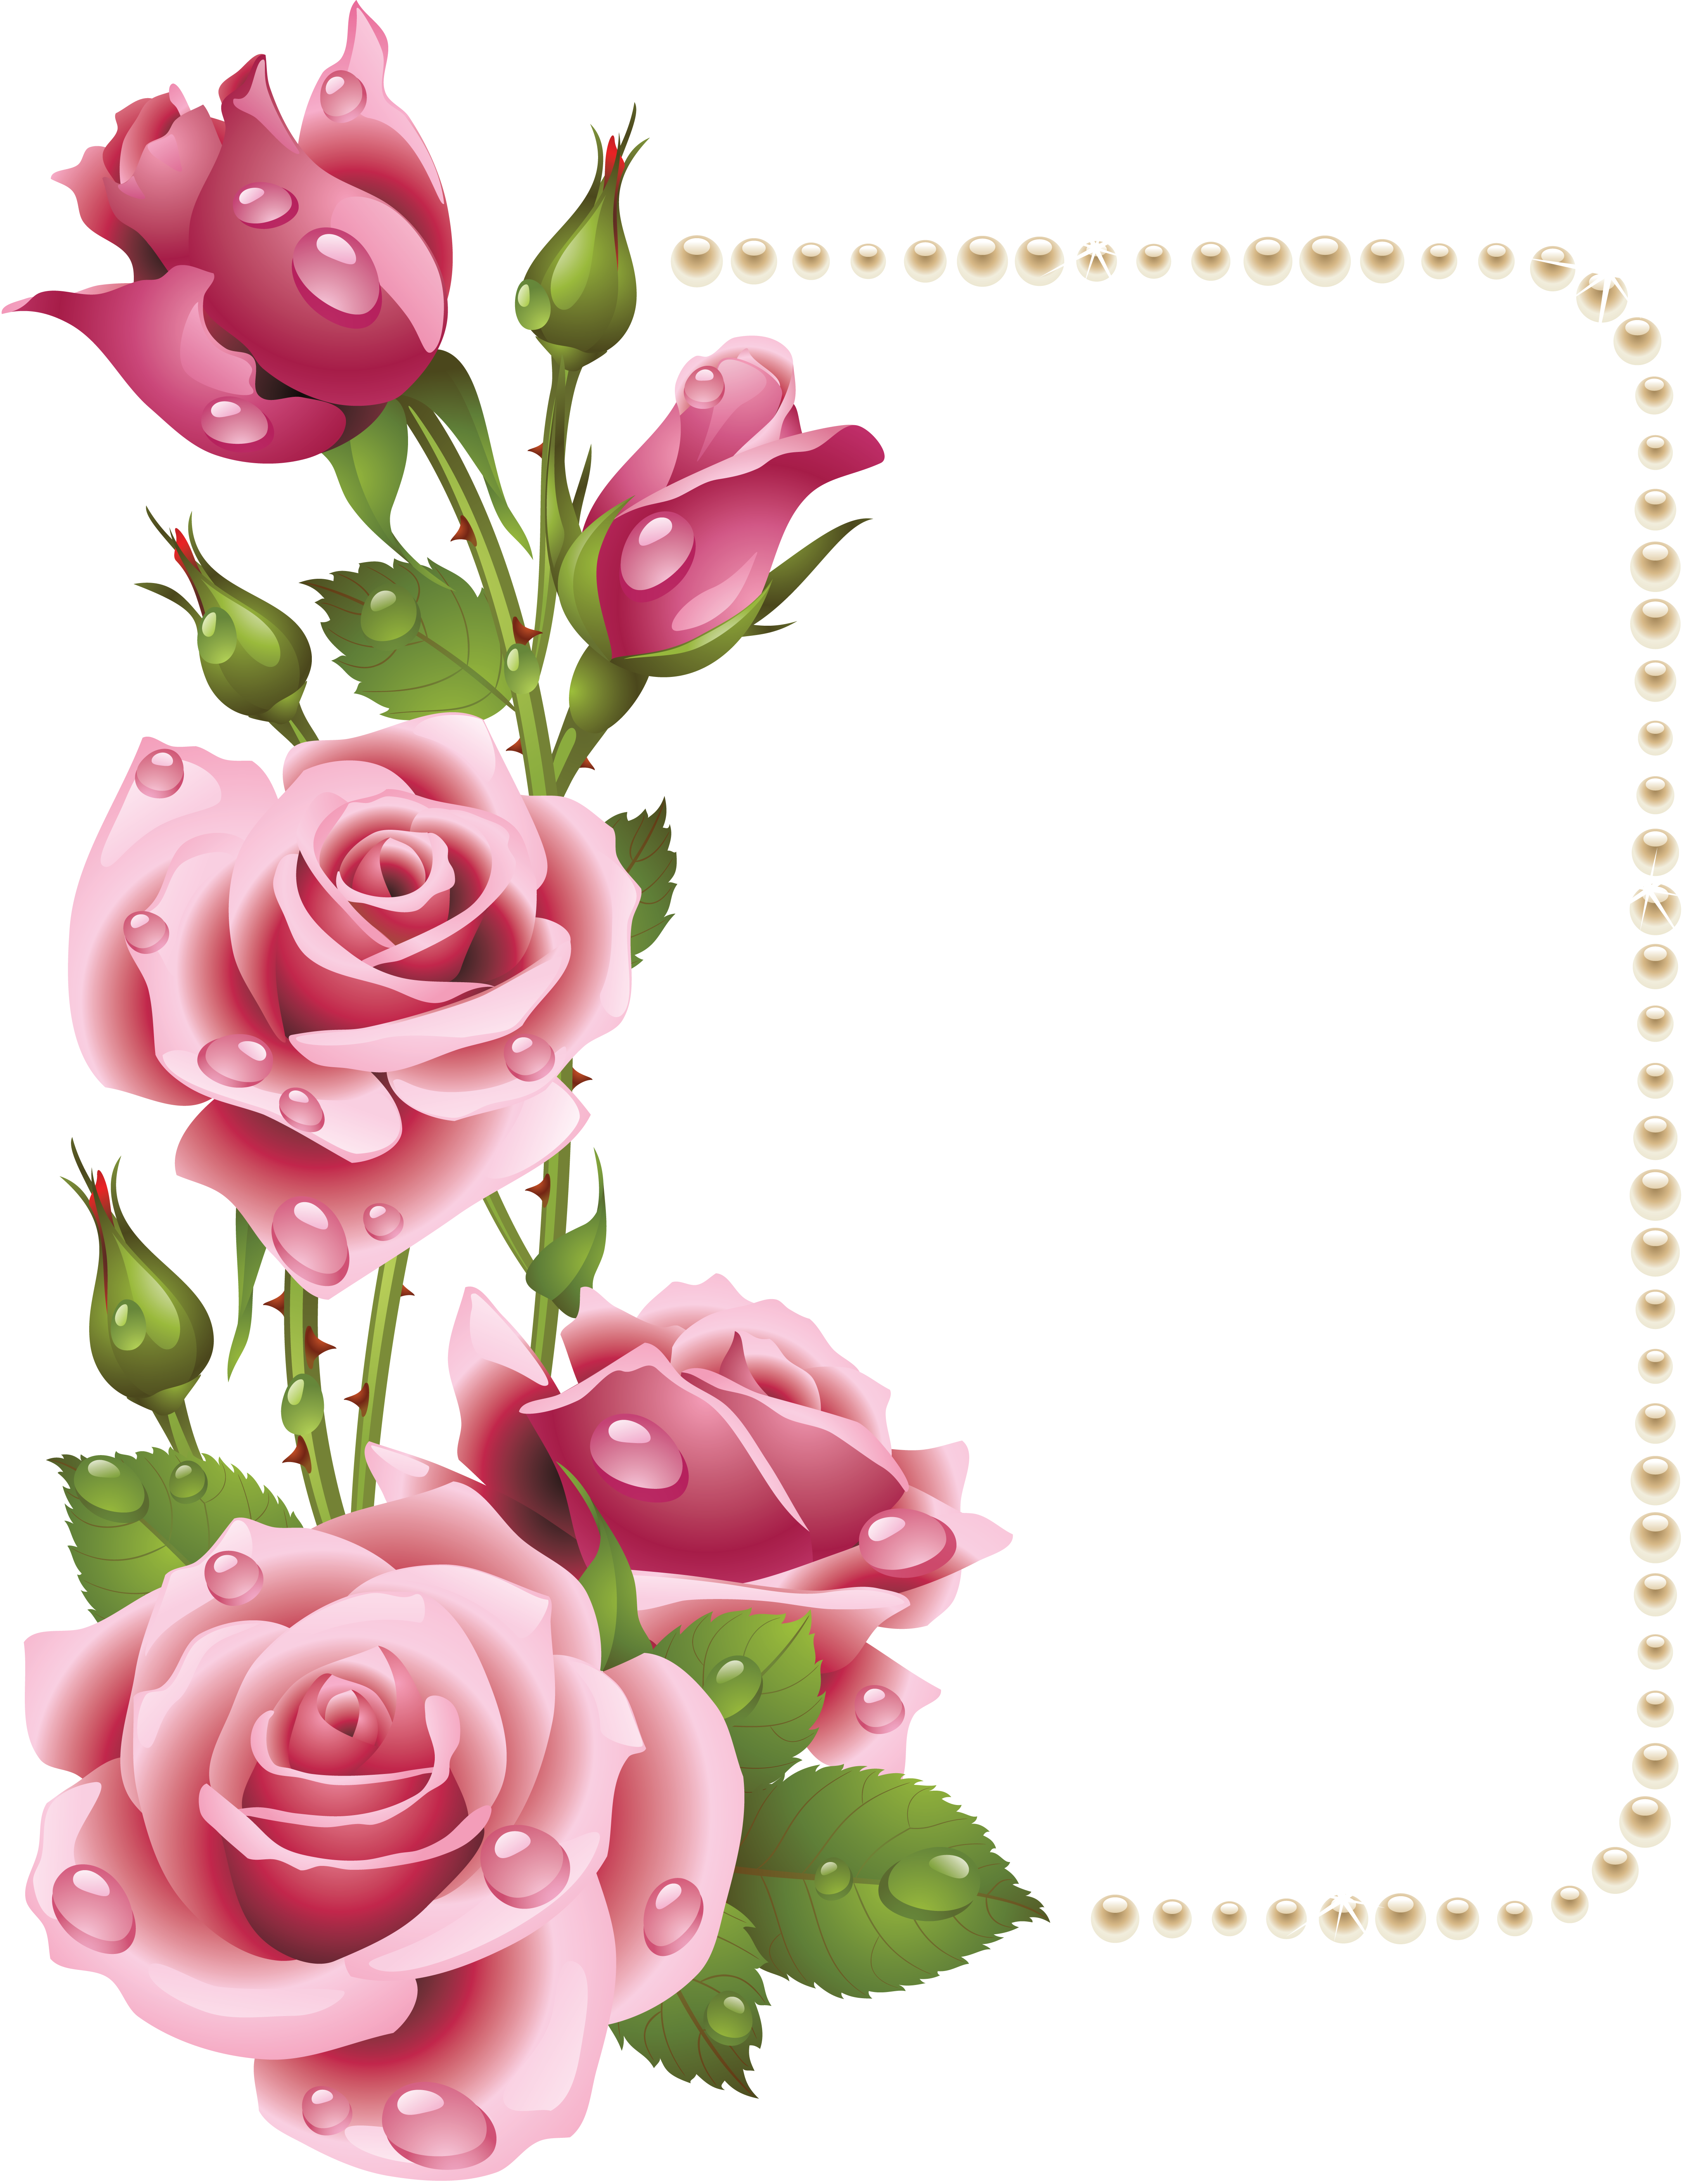 Free photo: Rose page Border - nature, plant, roses - Non-Commercial ...